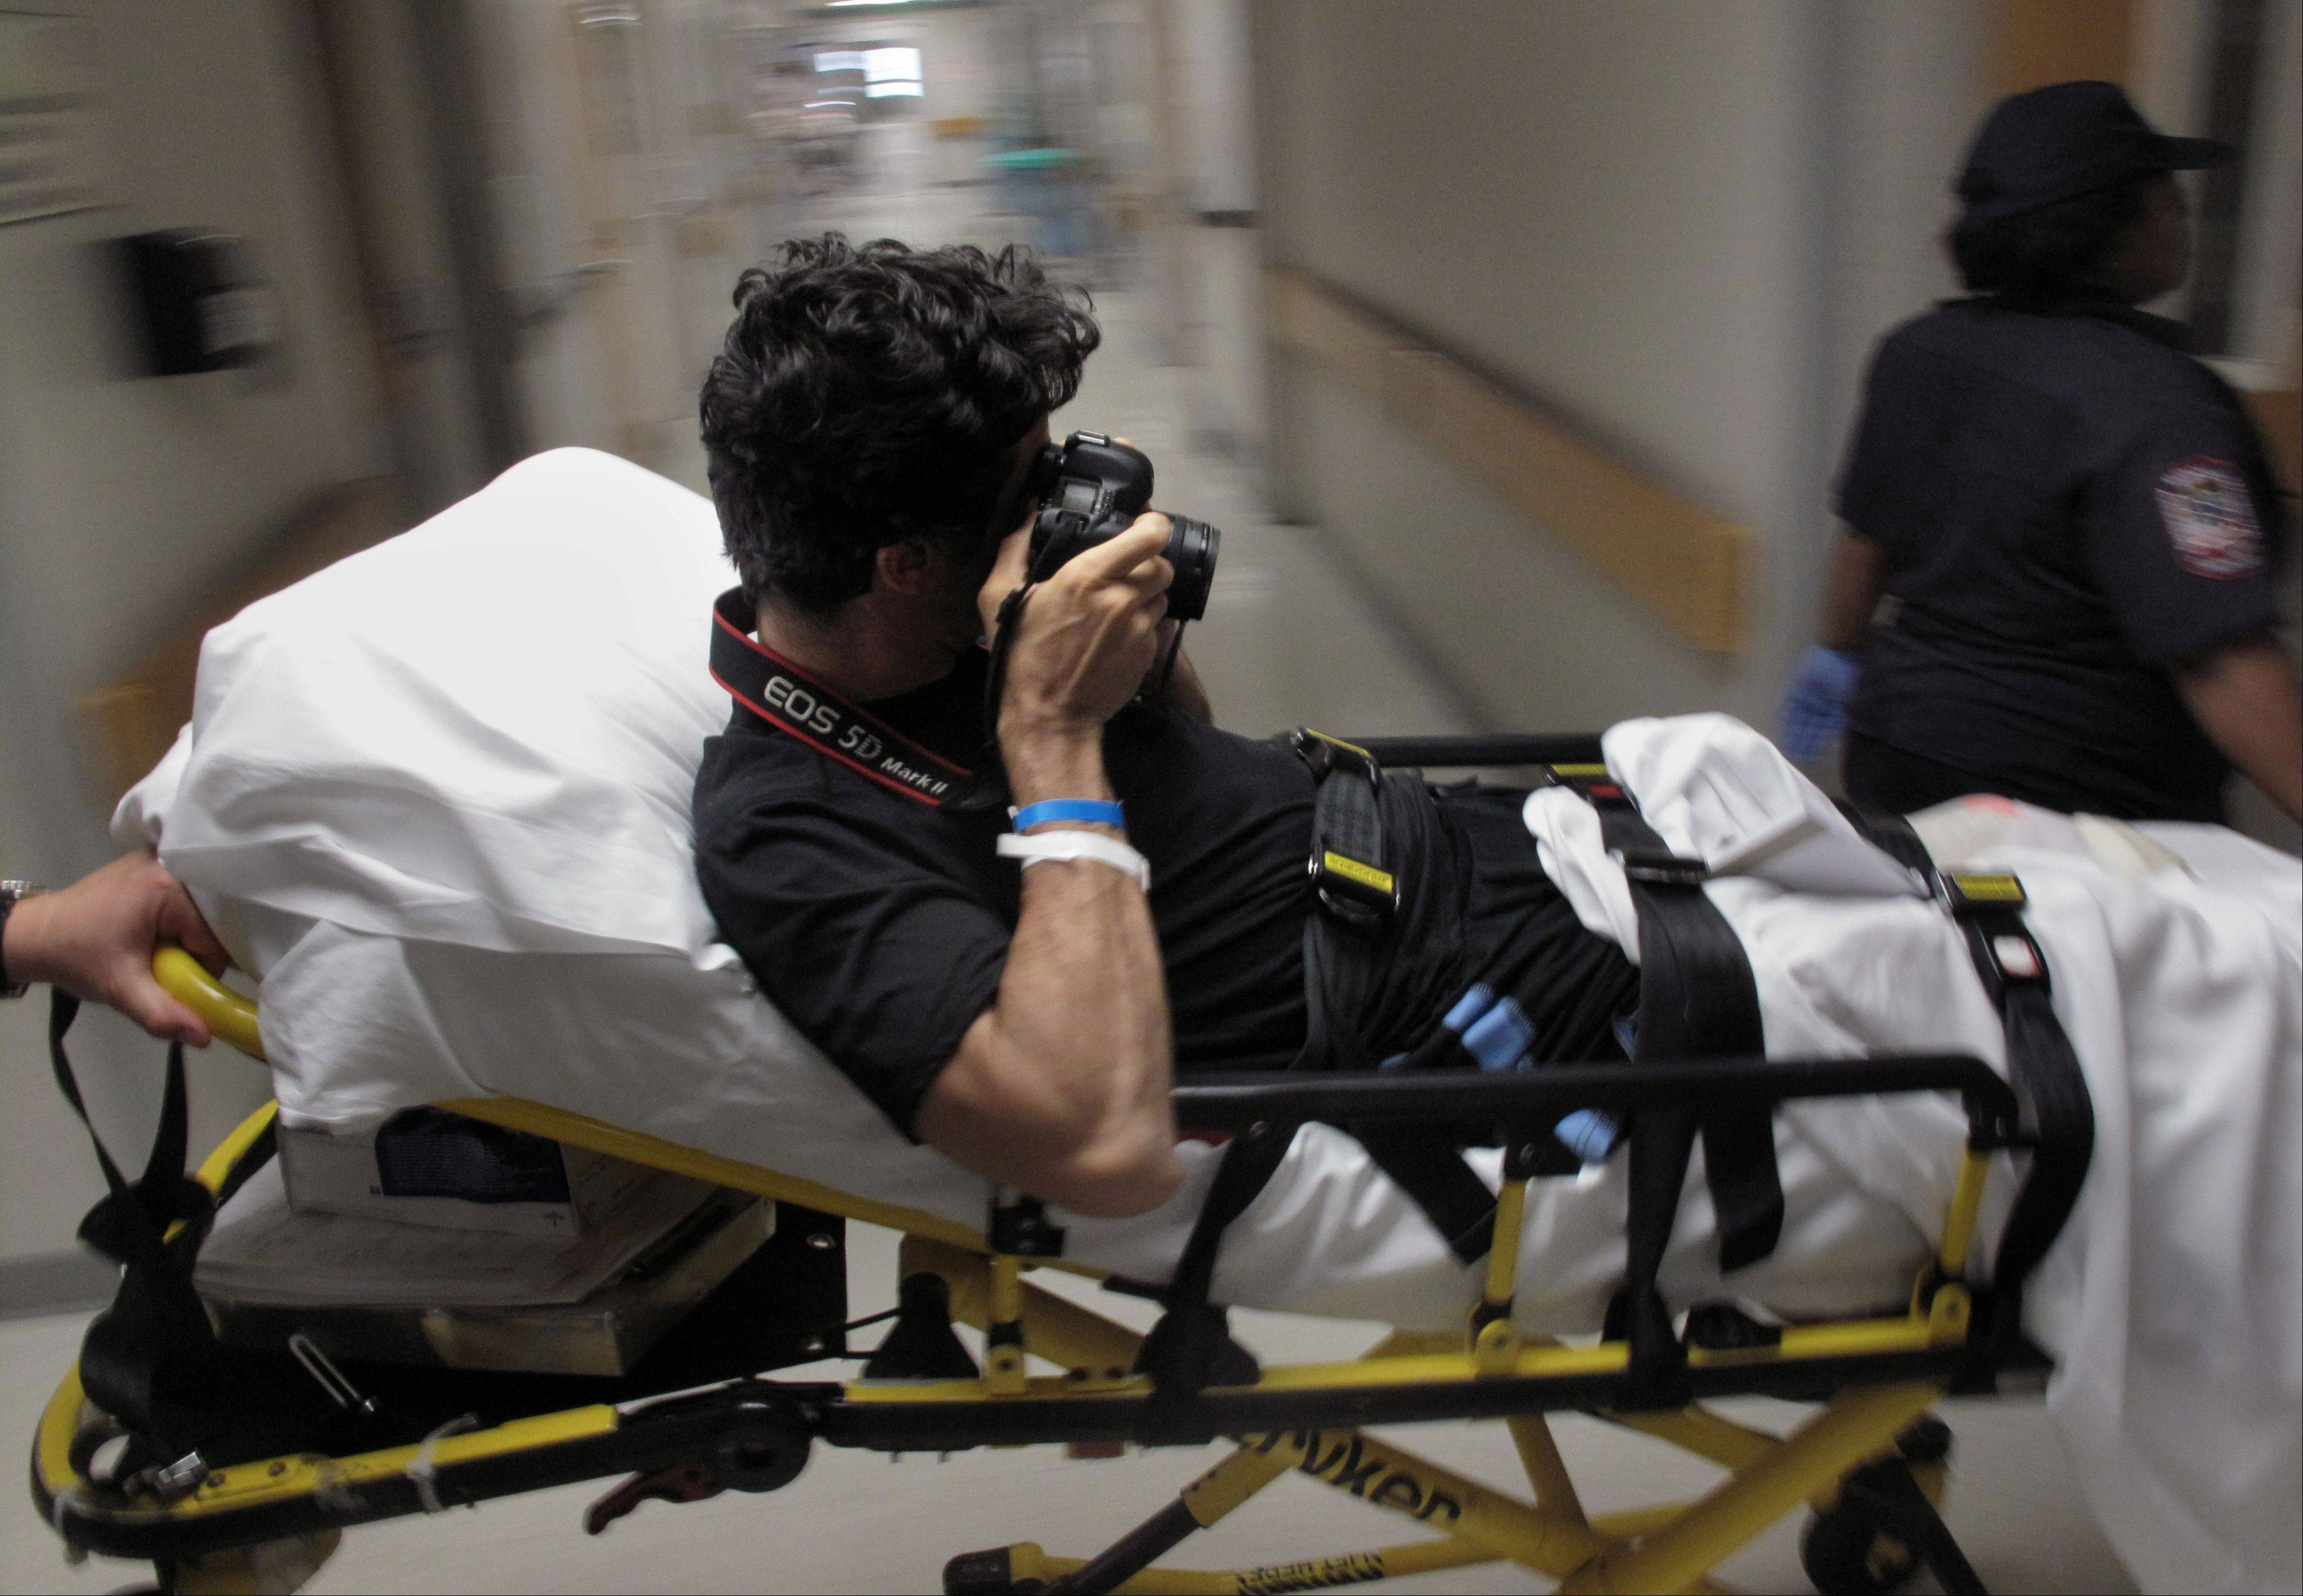 In this Aug. 25, 2009 picture, photographer Emilio Morenatti takes pictures as he is carried on a stretcher at University of Maryland Medical Center's R. Adams Cowley Shock Trauma Center in Baltimore, Md. For those who lost a limb or more in the Boston Marathon, Monday, April 15, 2013, was the day their world changed forever. Emilio's world changed on Tuesday, Aug. 11, 2009, in southern Afghanistan when the eight-wheel armored Stryker vehicle he was traveling in with U.S. soldiers hit a roadside bomb and flipped over, knocking him unconscious. Morenatti lost his leg in the bomb blast.